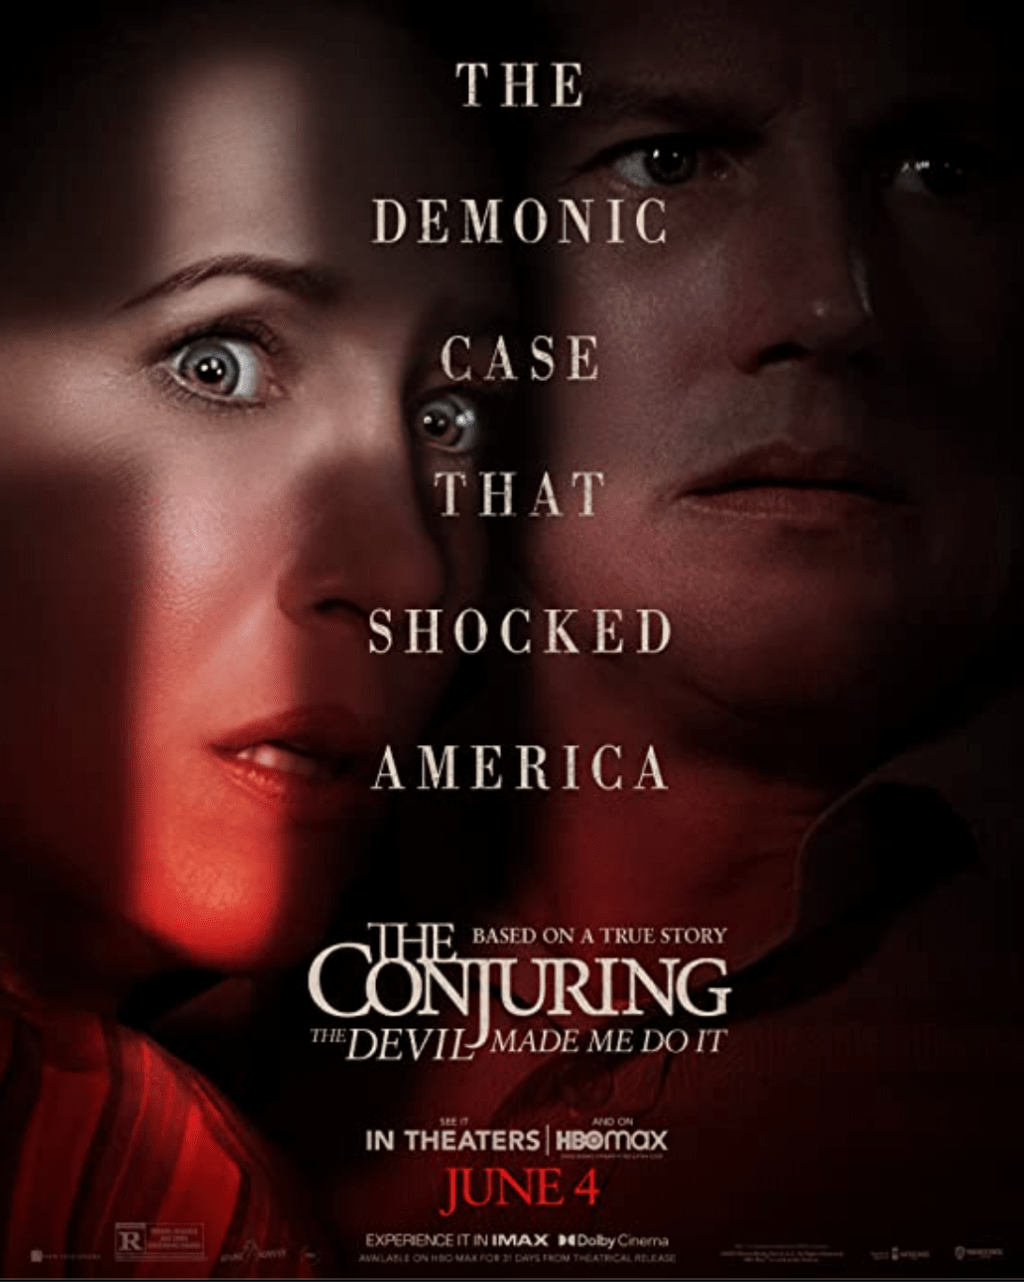 """The official poster for """"The Conjuring: The Devil Made Me Do It"""" shows Patrick Wilson and Vera Farmiga as Ed and Lorraine Warren, the stars of the franchise. As indicated by the poster, the events in the film were loosely based on a case of demonic possession recorded by the actual Warrens. Photo Courtesy of Warner Bros. Pictures"""